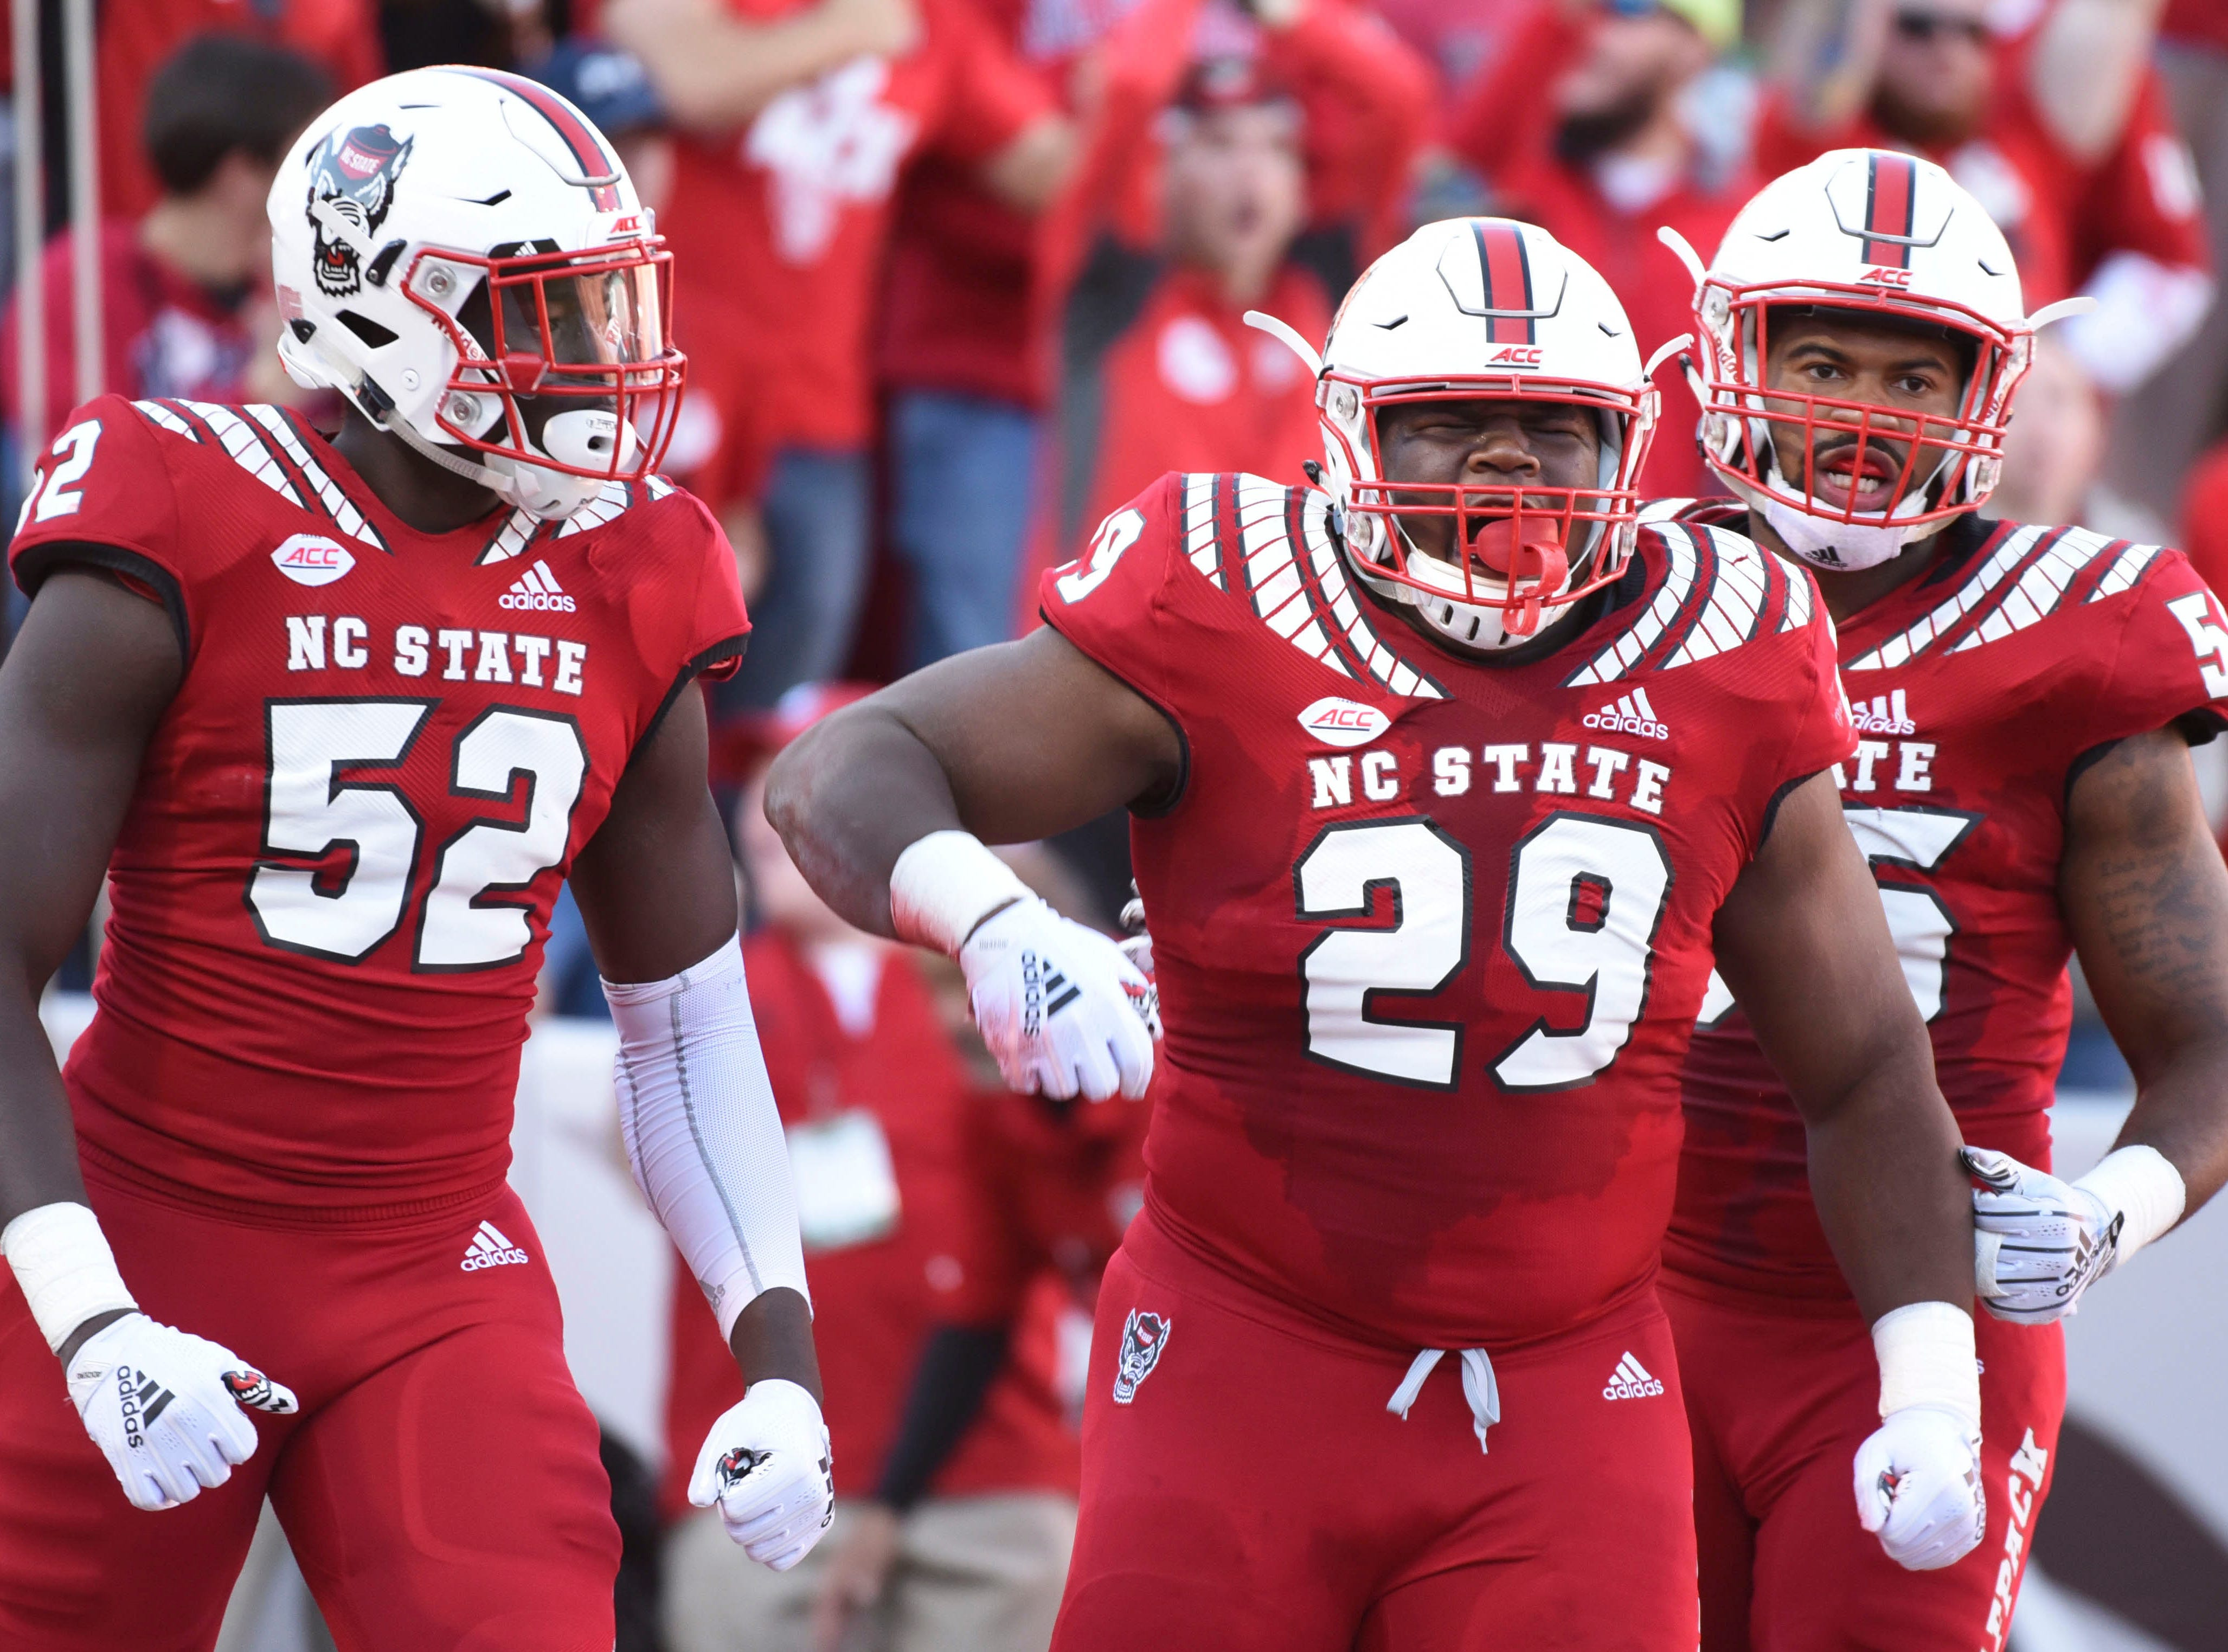 Nov 3, 2018; Raleigh, NC, USA; North Carolina State Wolfpack defensive tackle Alim McNeill (29) celebrates a sack during the first half against the Florida State Seminoles at Carter-Finley Stadium. Mandatory Credit: Rob Kinnan-USA TODAY Sports